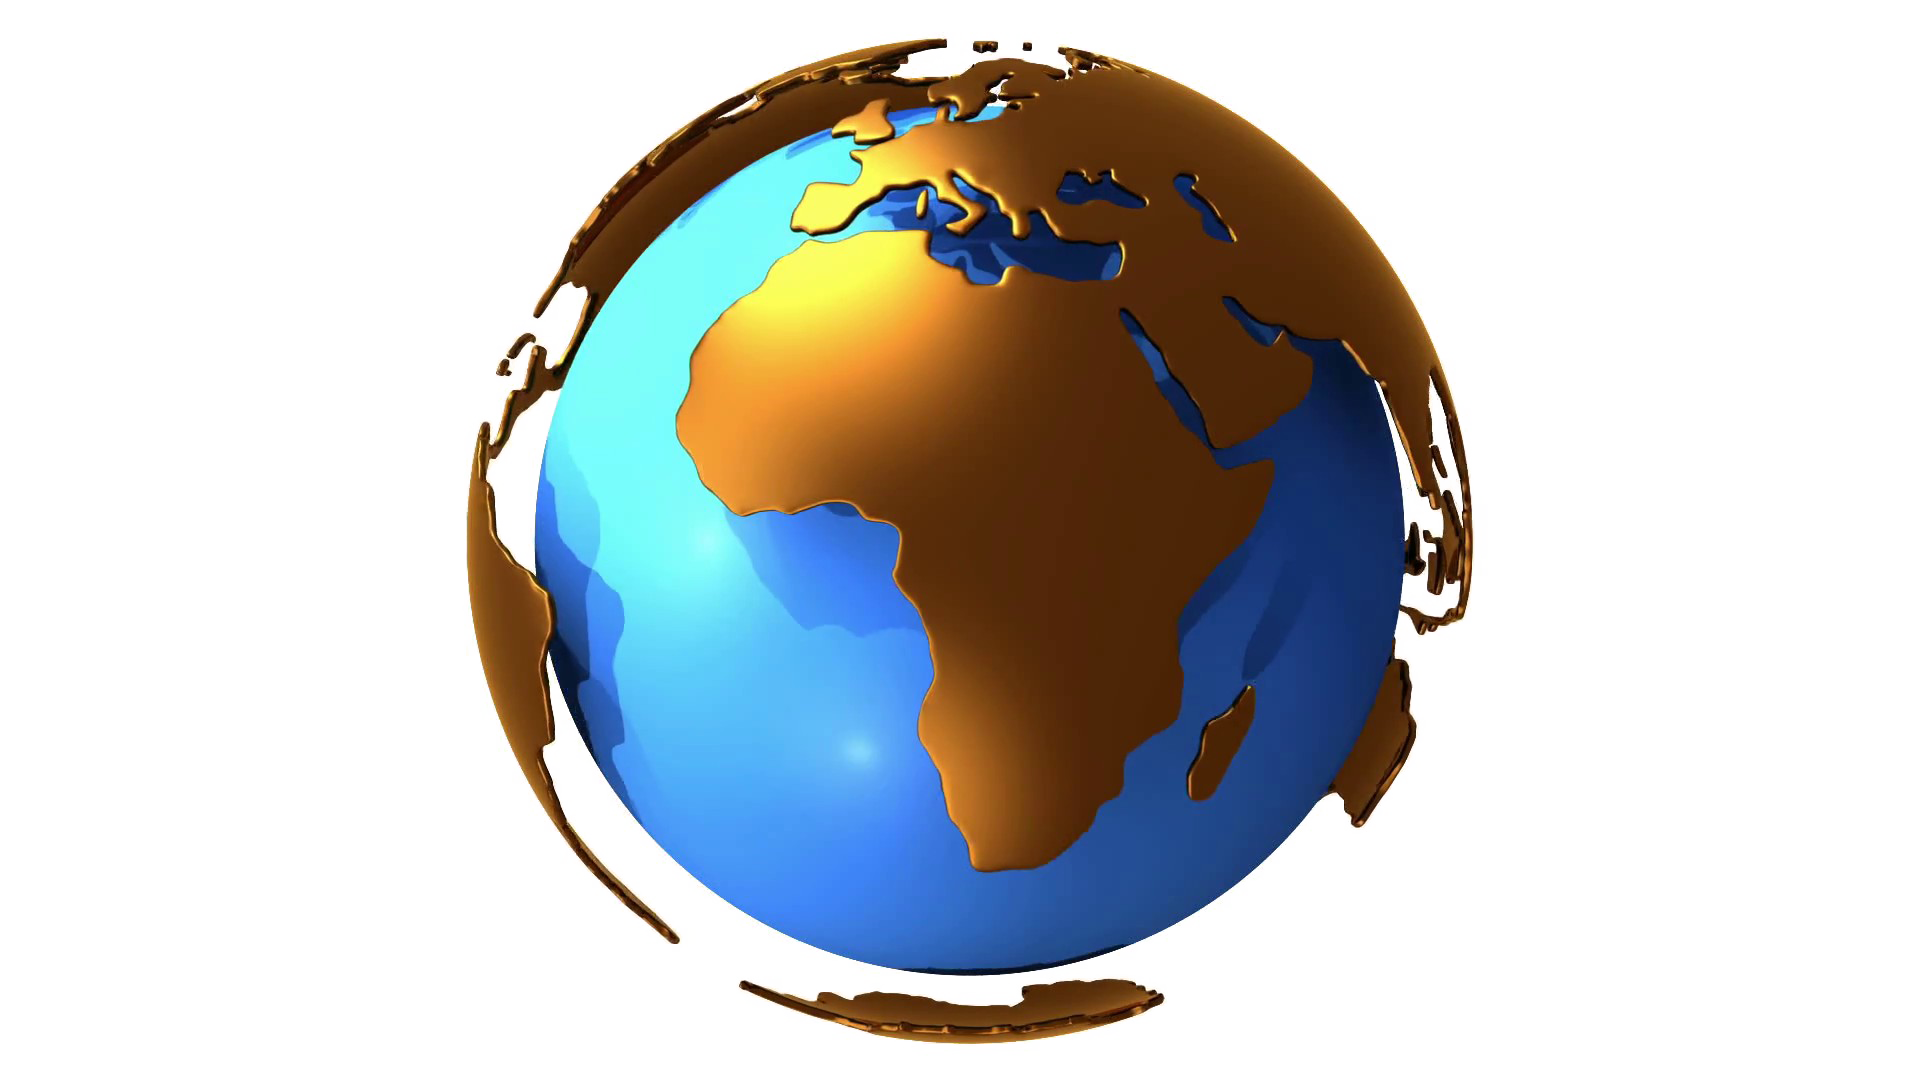 Globe PNG Images Transparent Free Download.